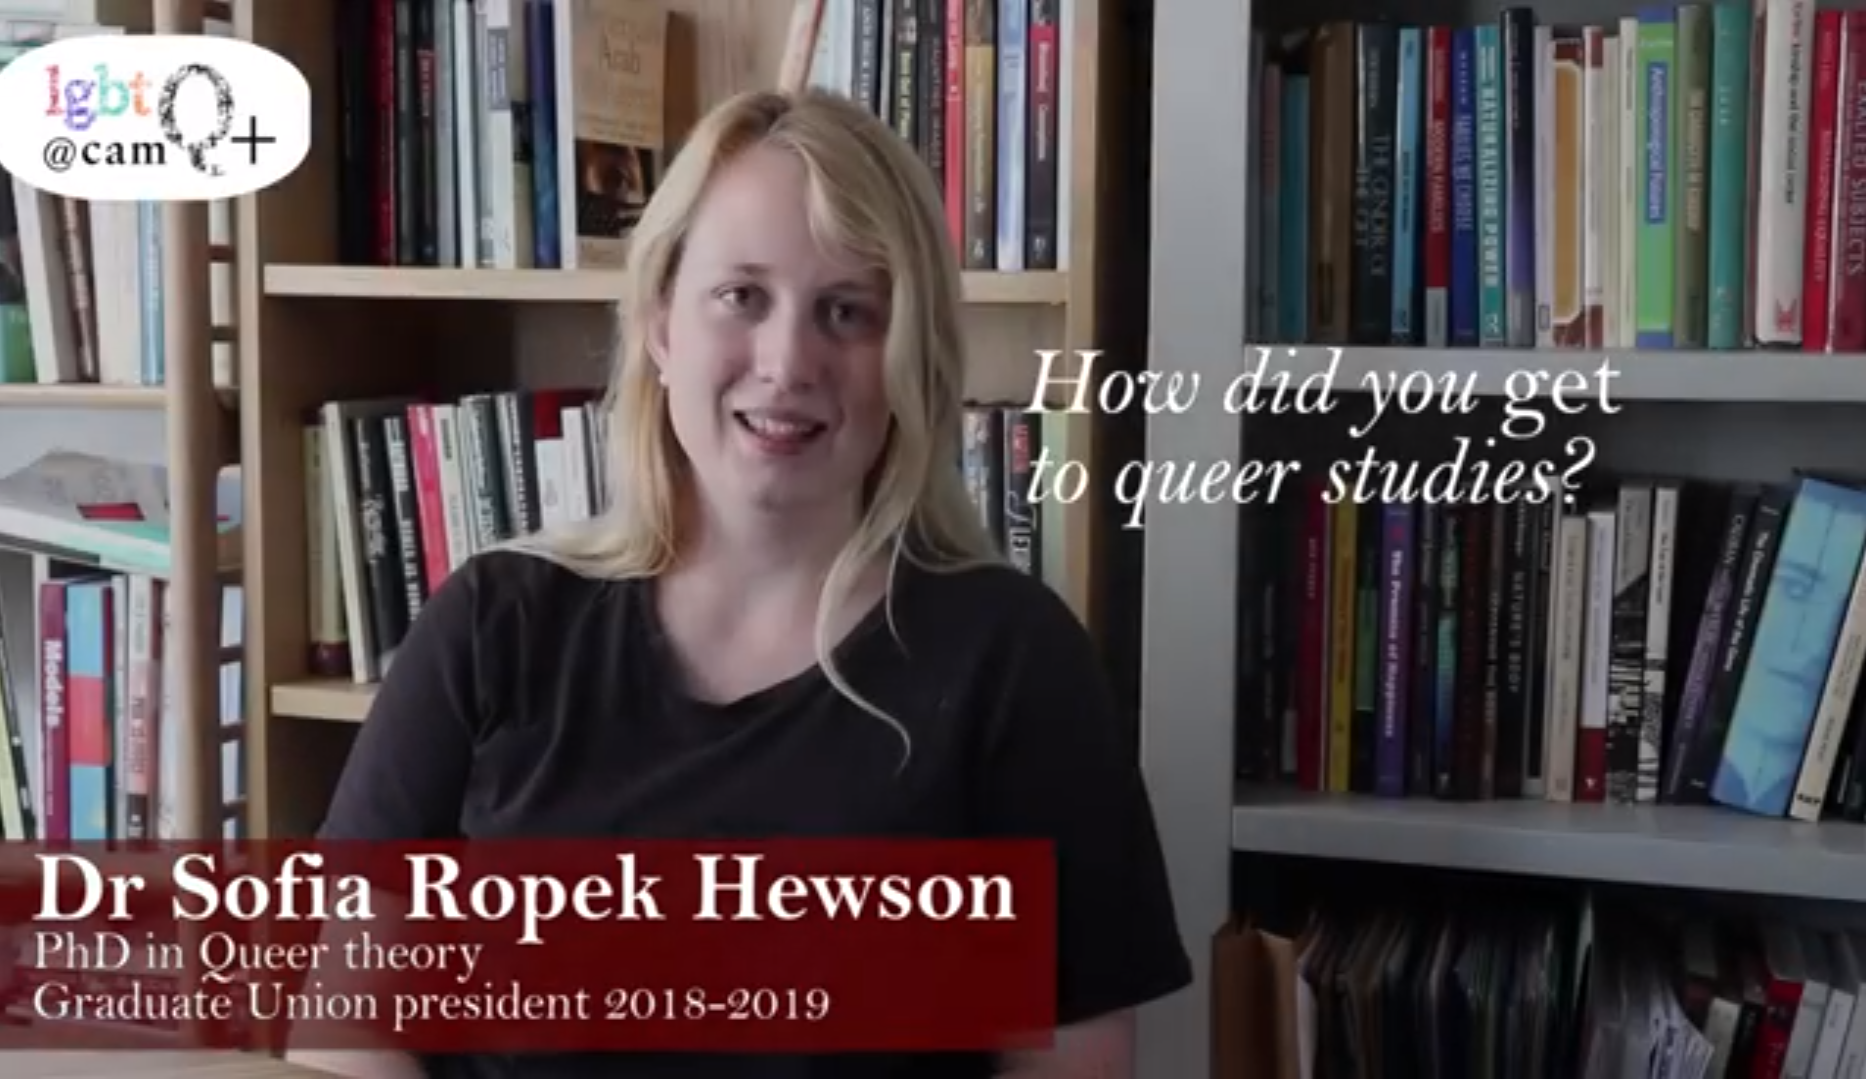 New video: Dr Sofia Ropek Hewson Queeries the Curriculum